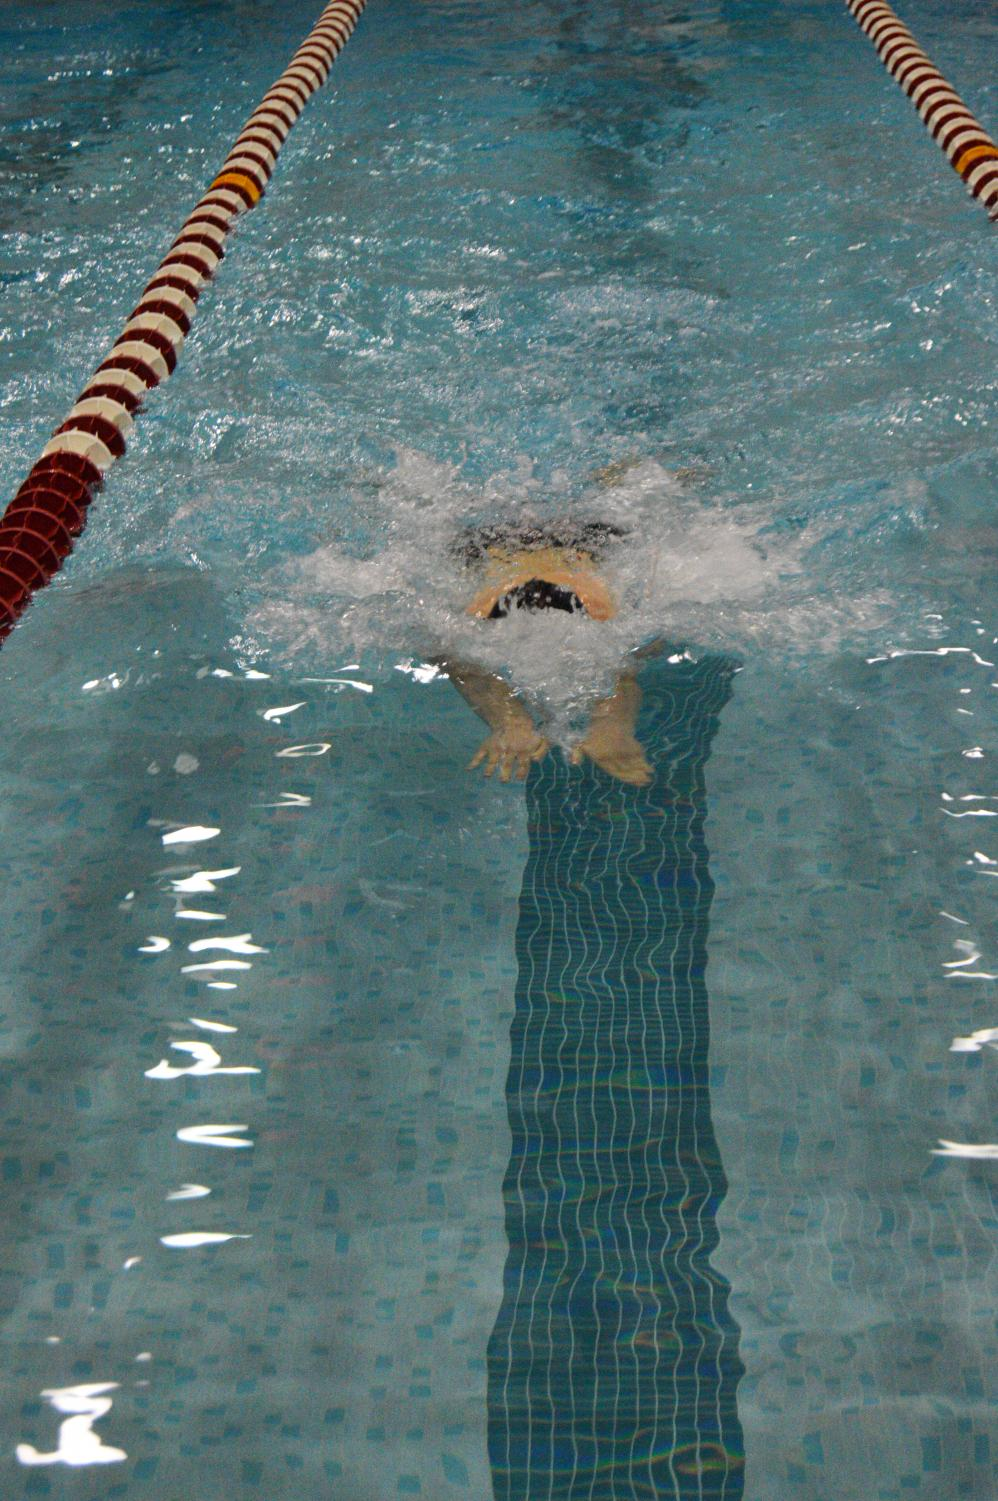 Niles+West+varsity+swimmer+in+the+middle+of+his+breaststroke.+